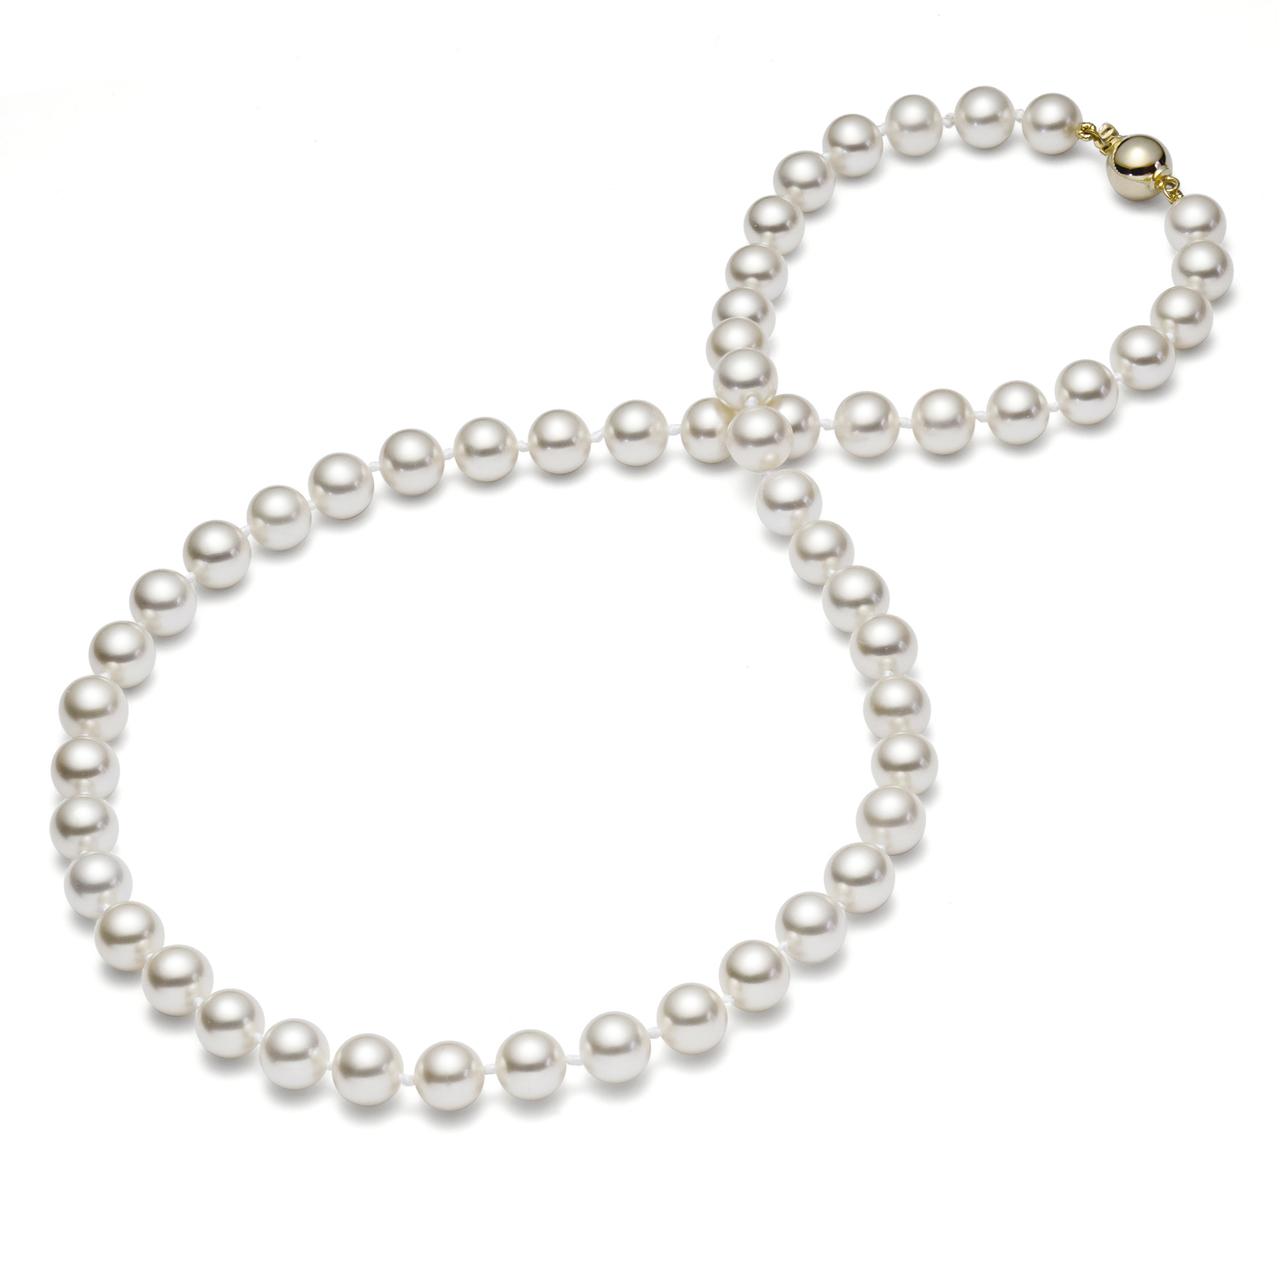 c08487a1c0ce5 White Round Freshwater Cultured Pearl Necklace 14K Gold 18